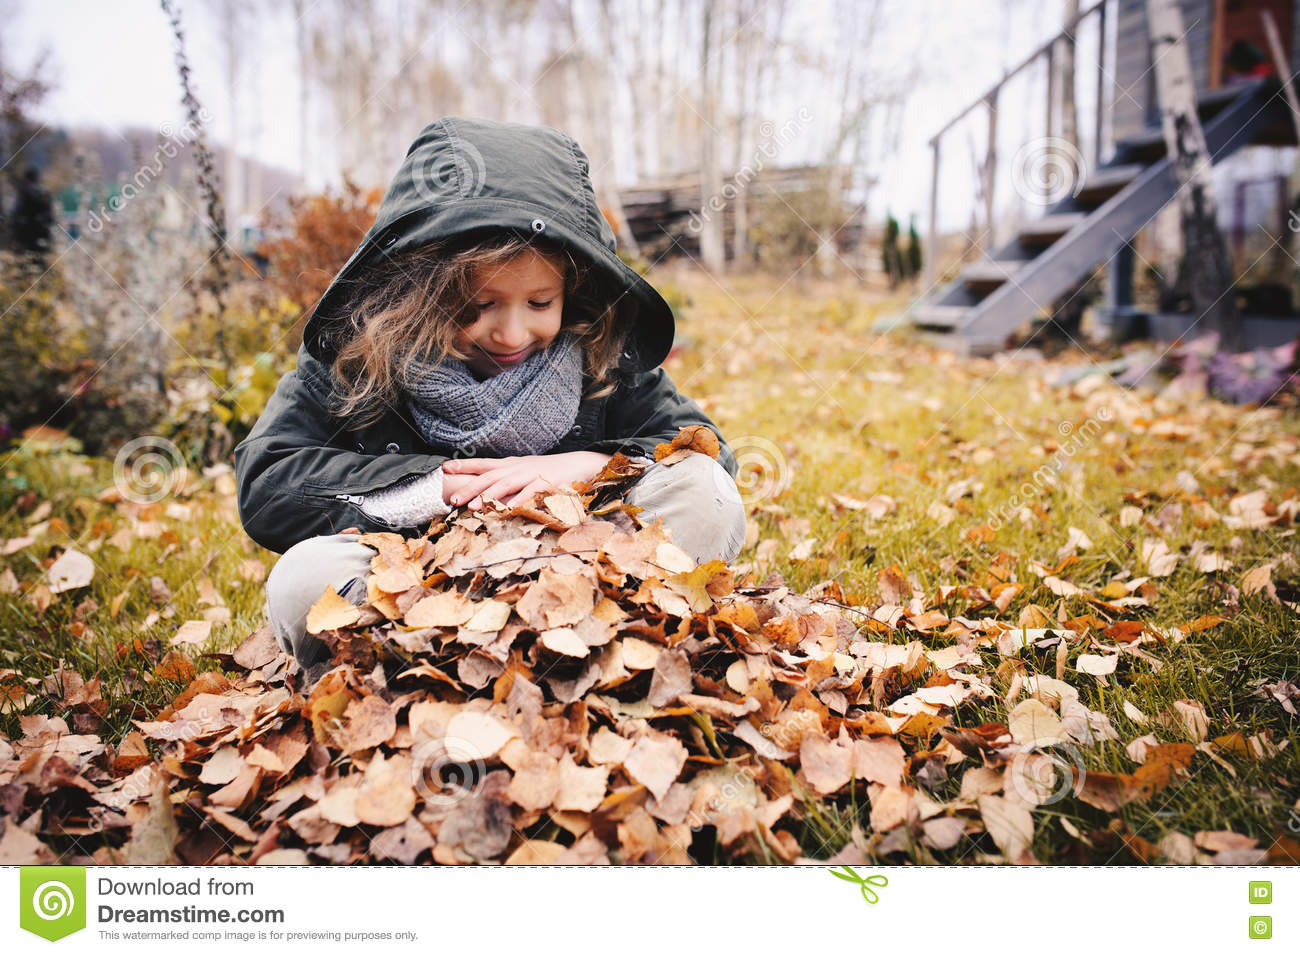 Download Happy Child Playing With Leaves In Autumn. Seasonal Outdoor Activities With Kids Stock Photo - Image of activities, play: 71686116